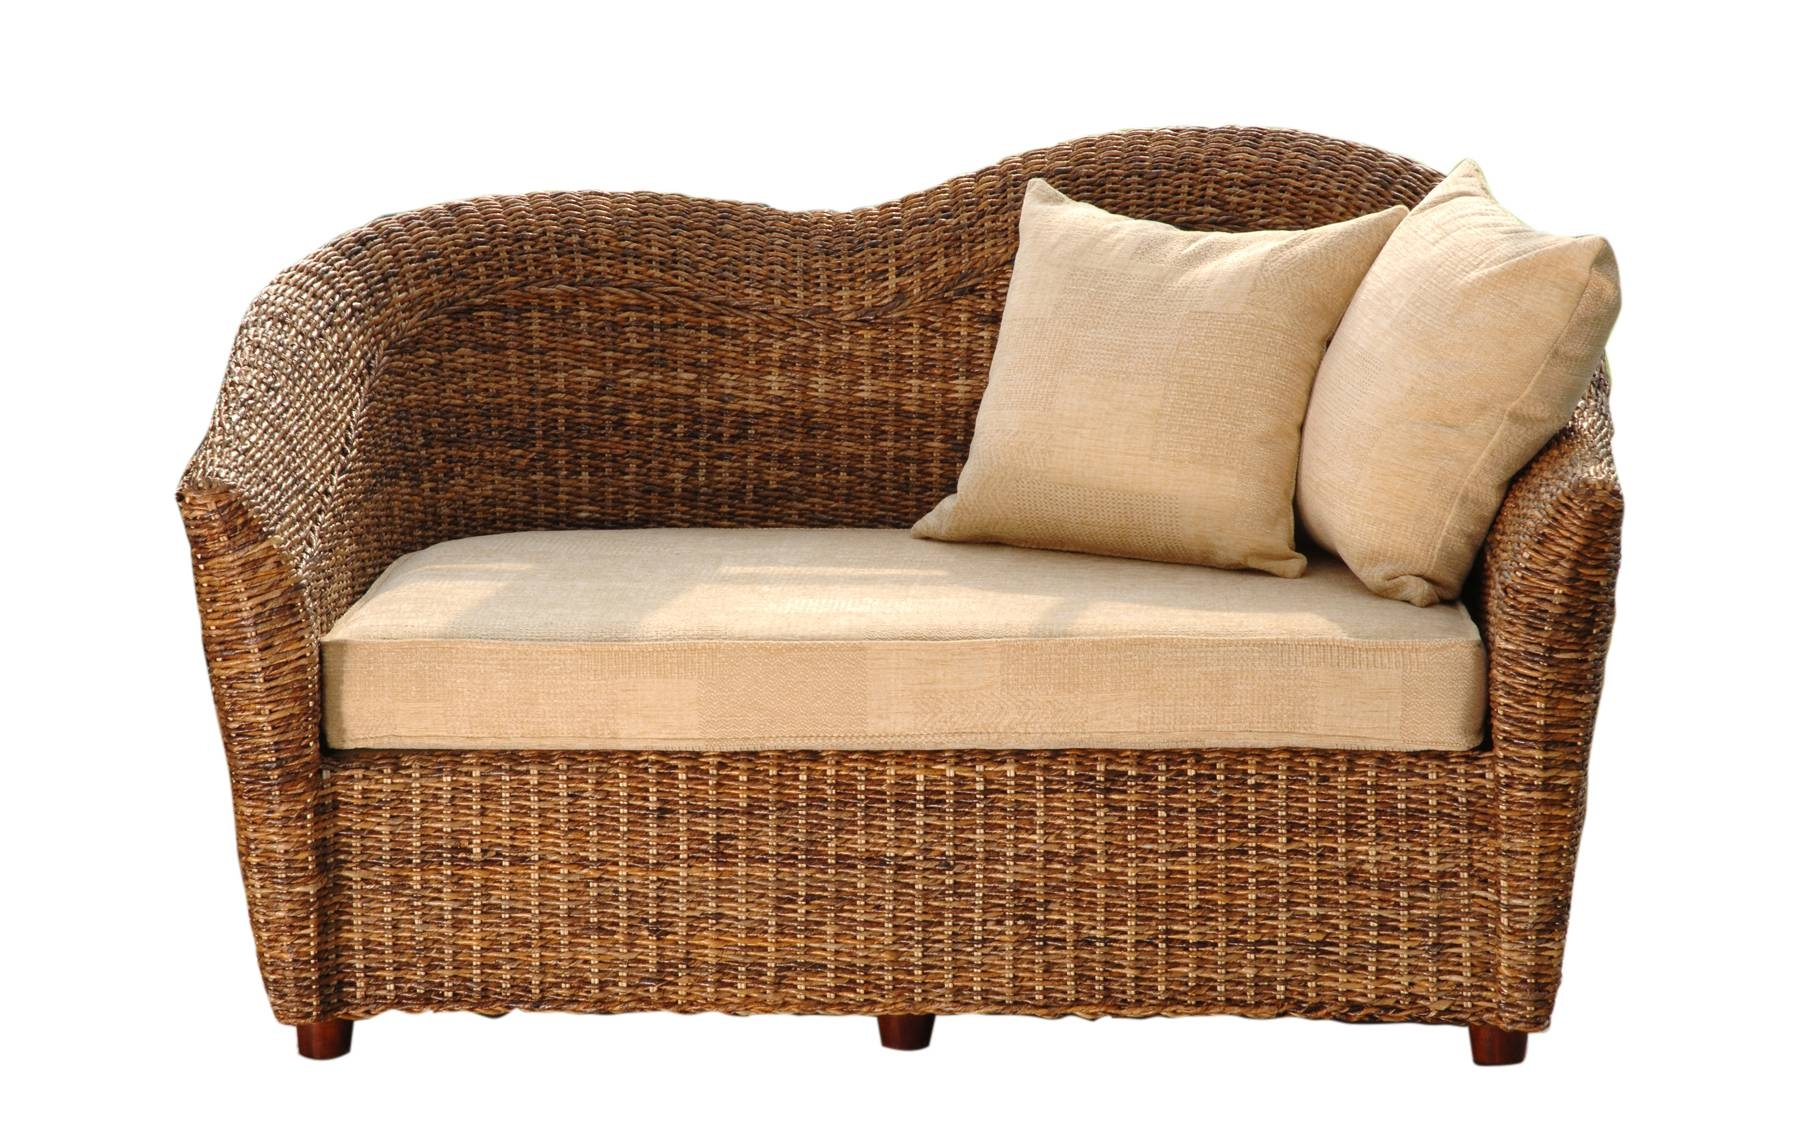 Cane Sofa-Mayuri International inside Cane Sofas (Image 5 of 15)